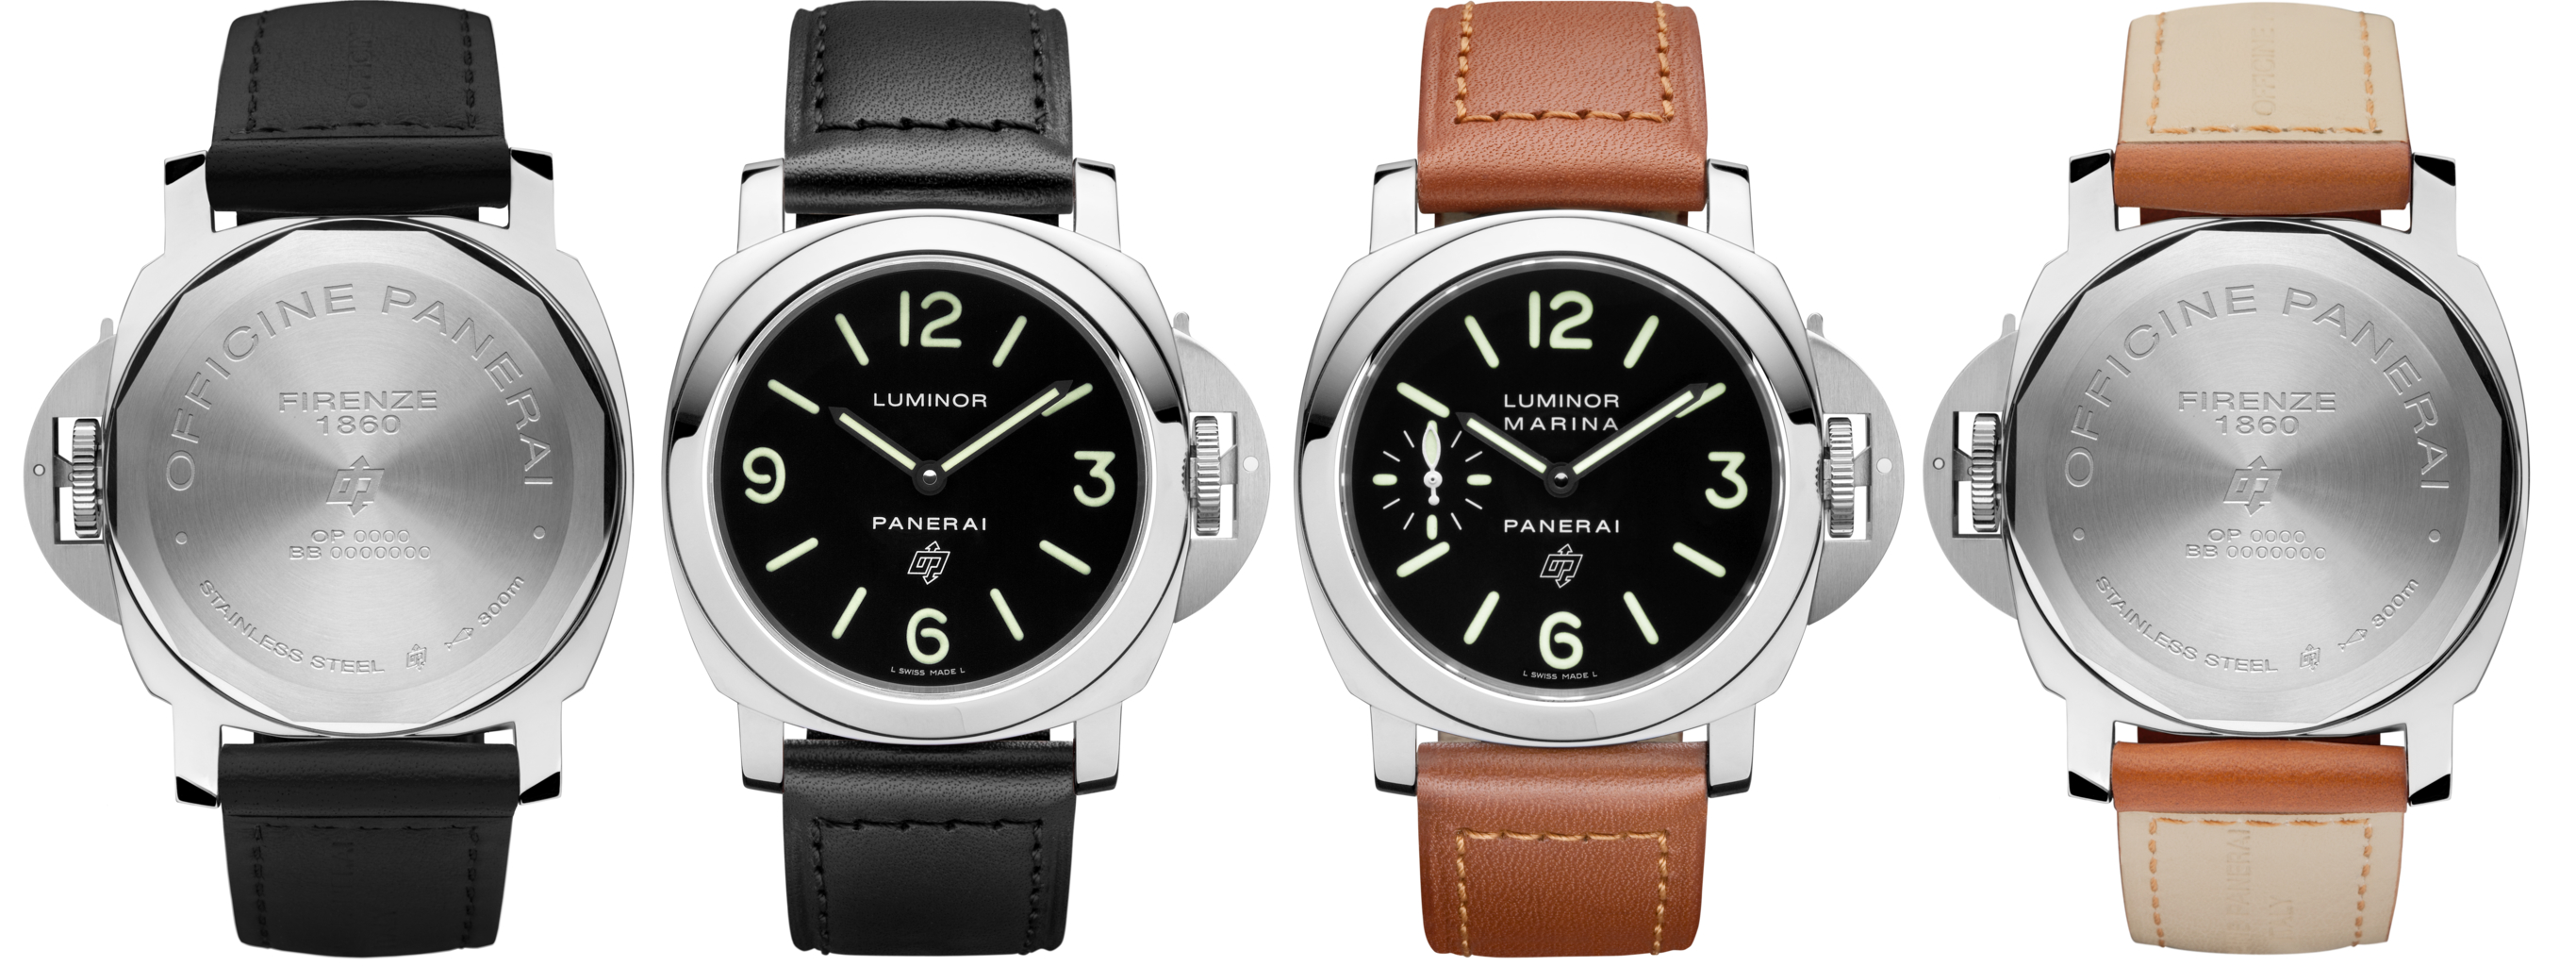 Officine-Panerai-PAM00000-all.jpg